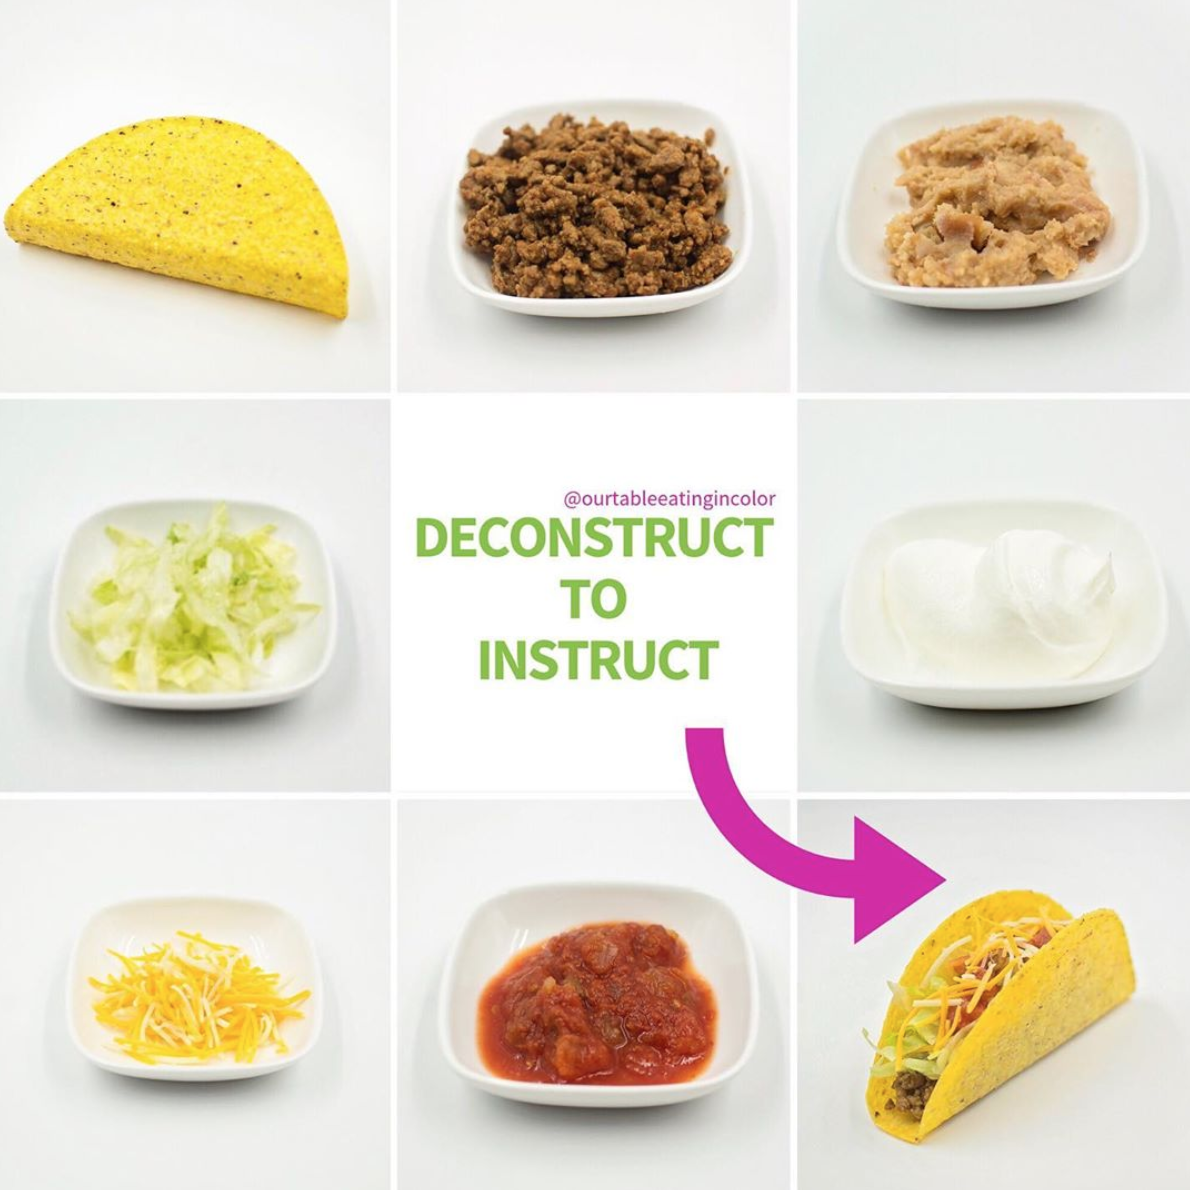 Deconstruct to Instruct – TACO EDITION